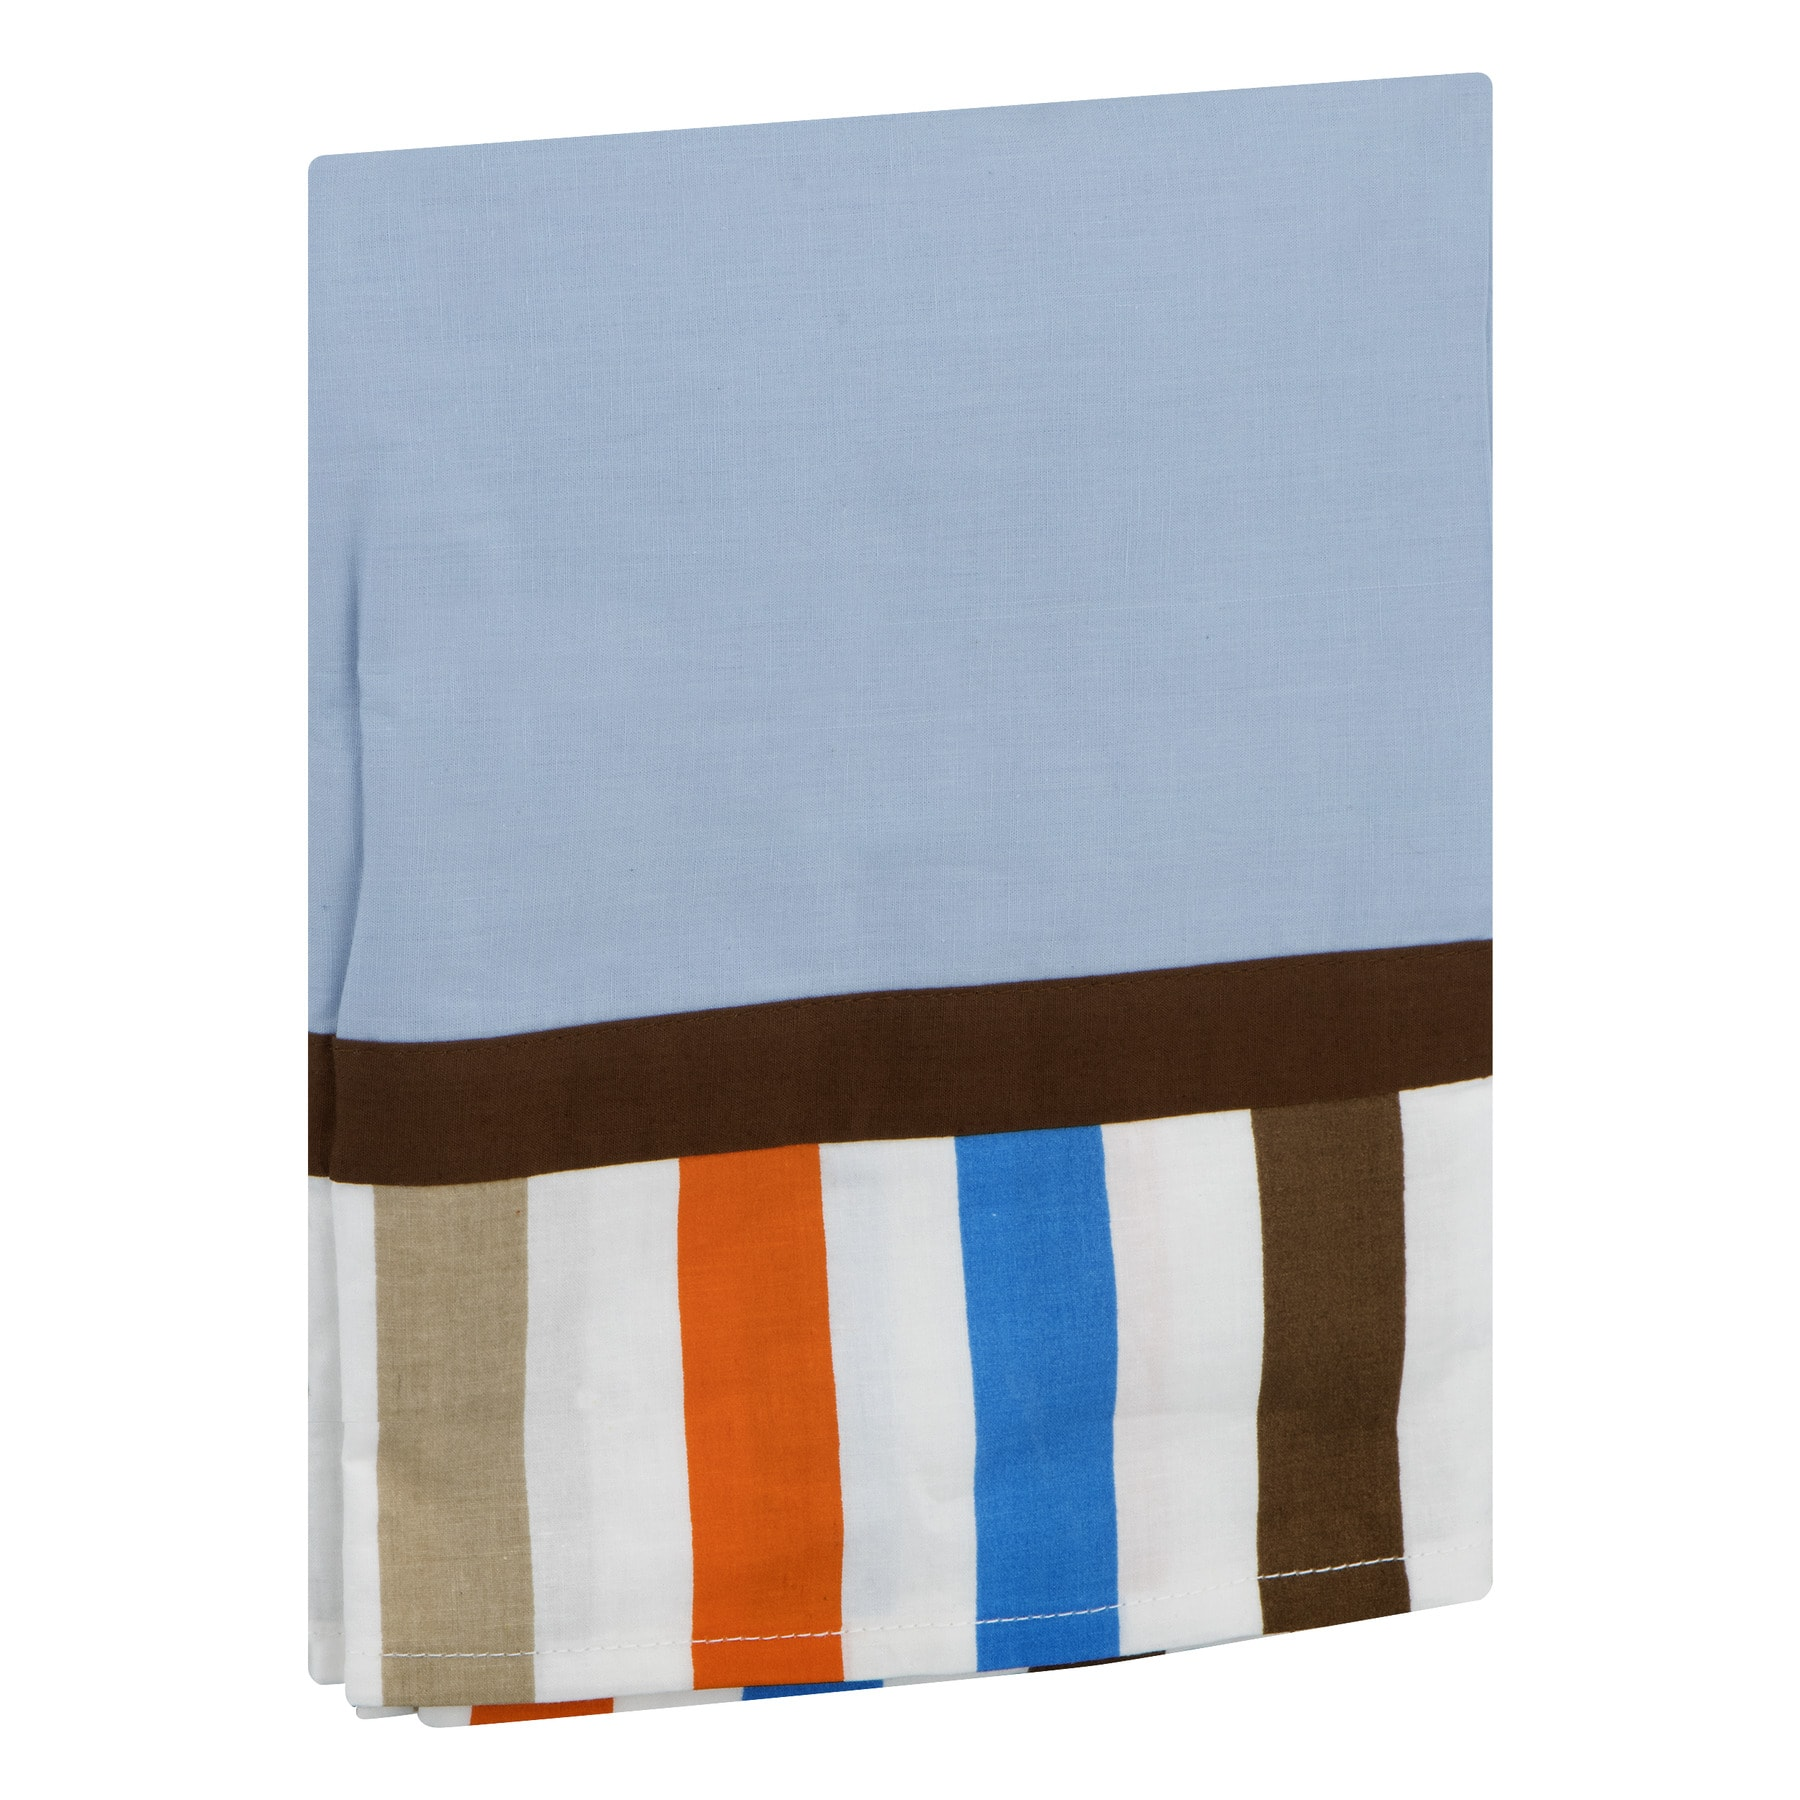 Bacati Nursery Curtains & Valances $5 at Walmart or Free Shipping w/ Prime